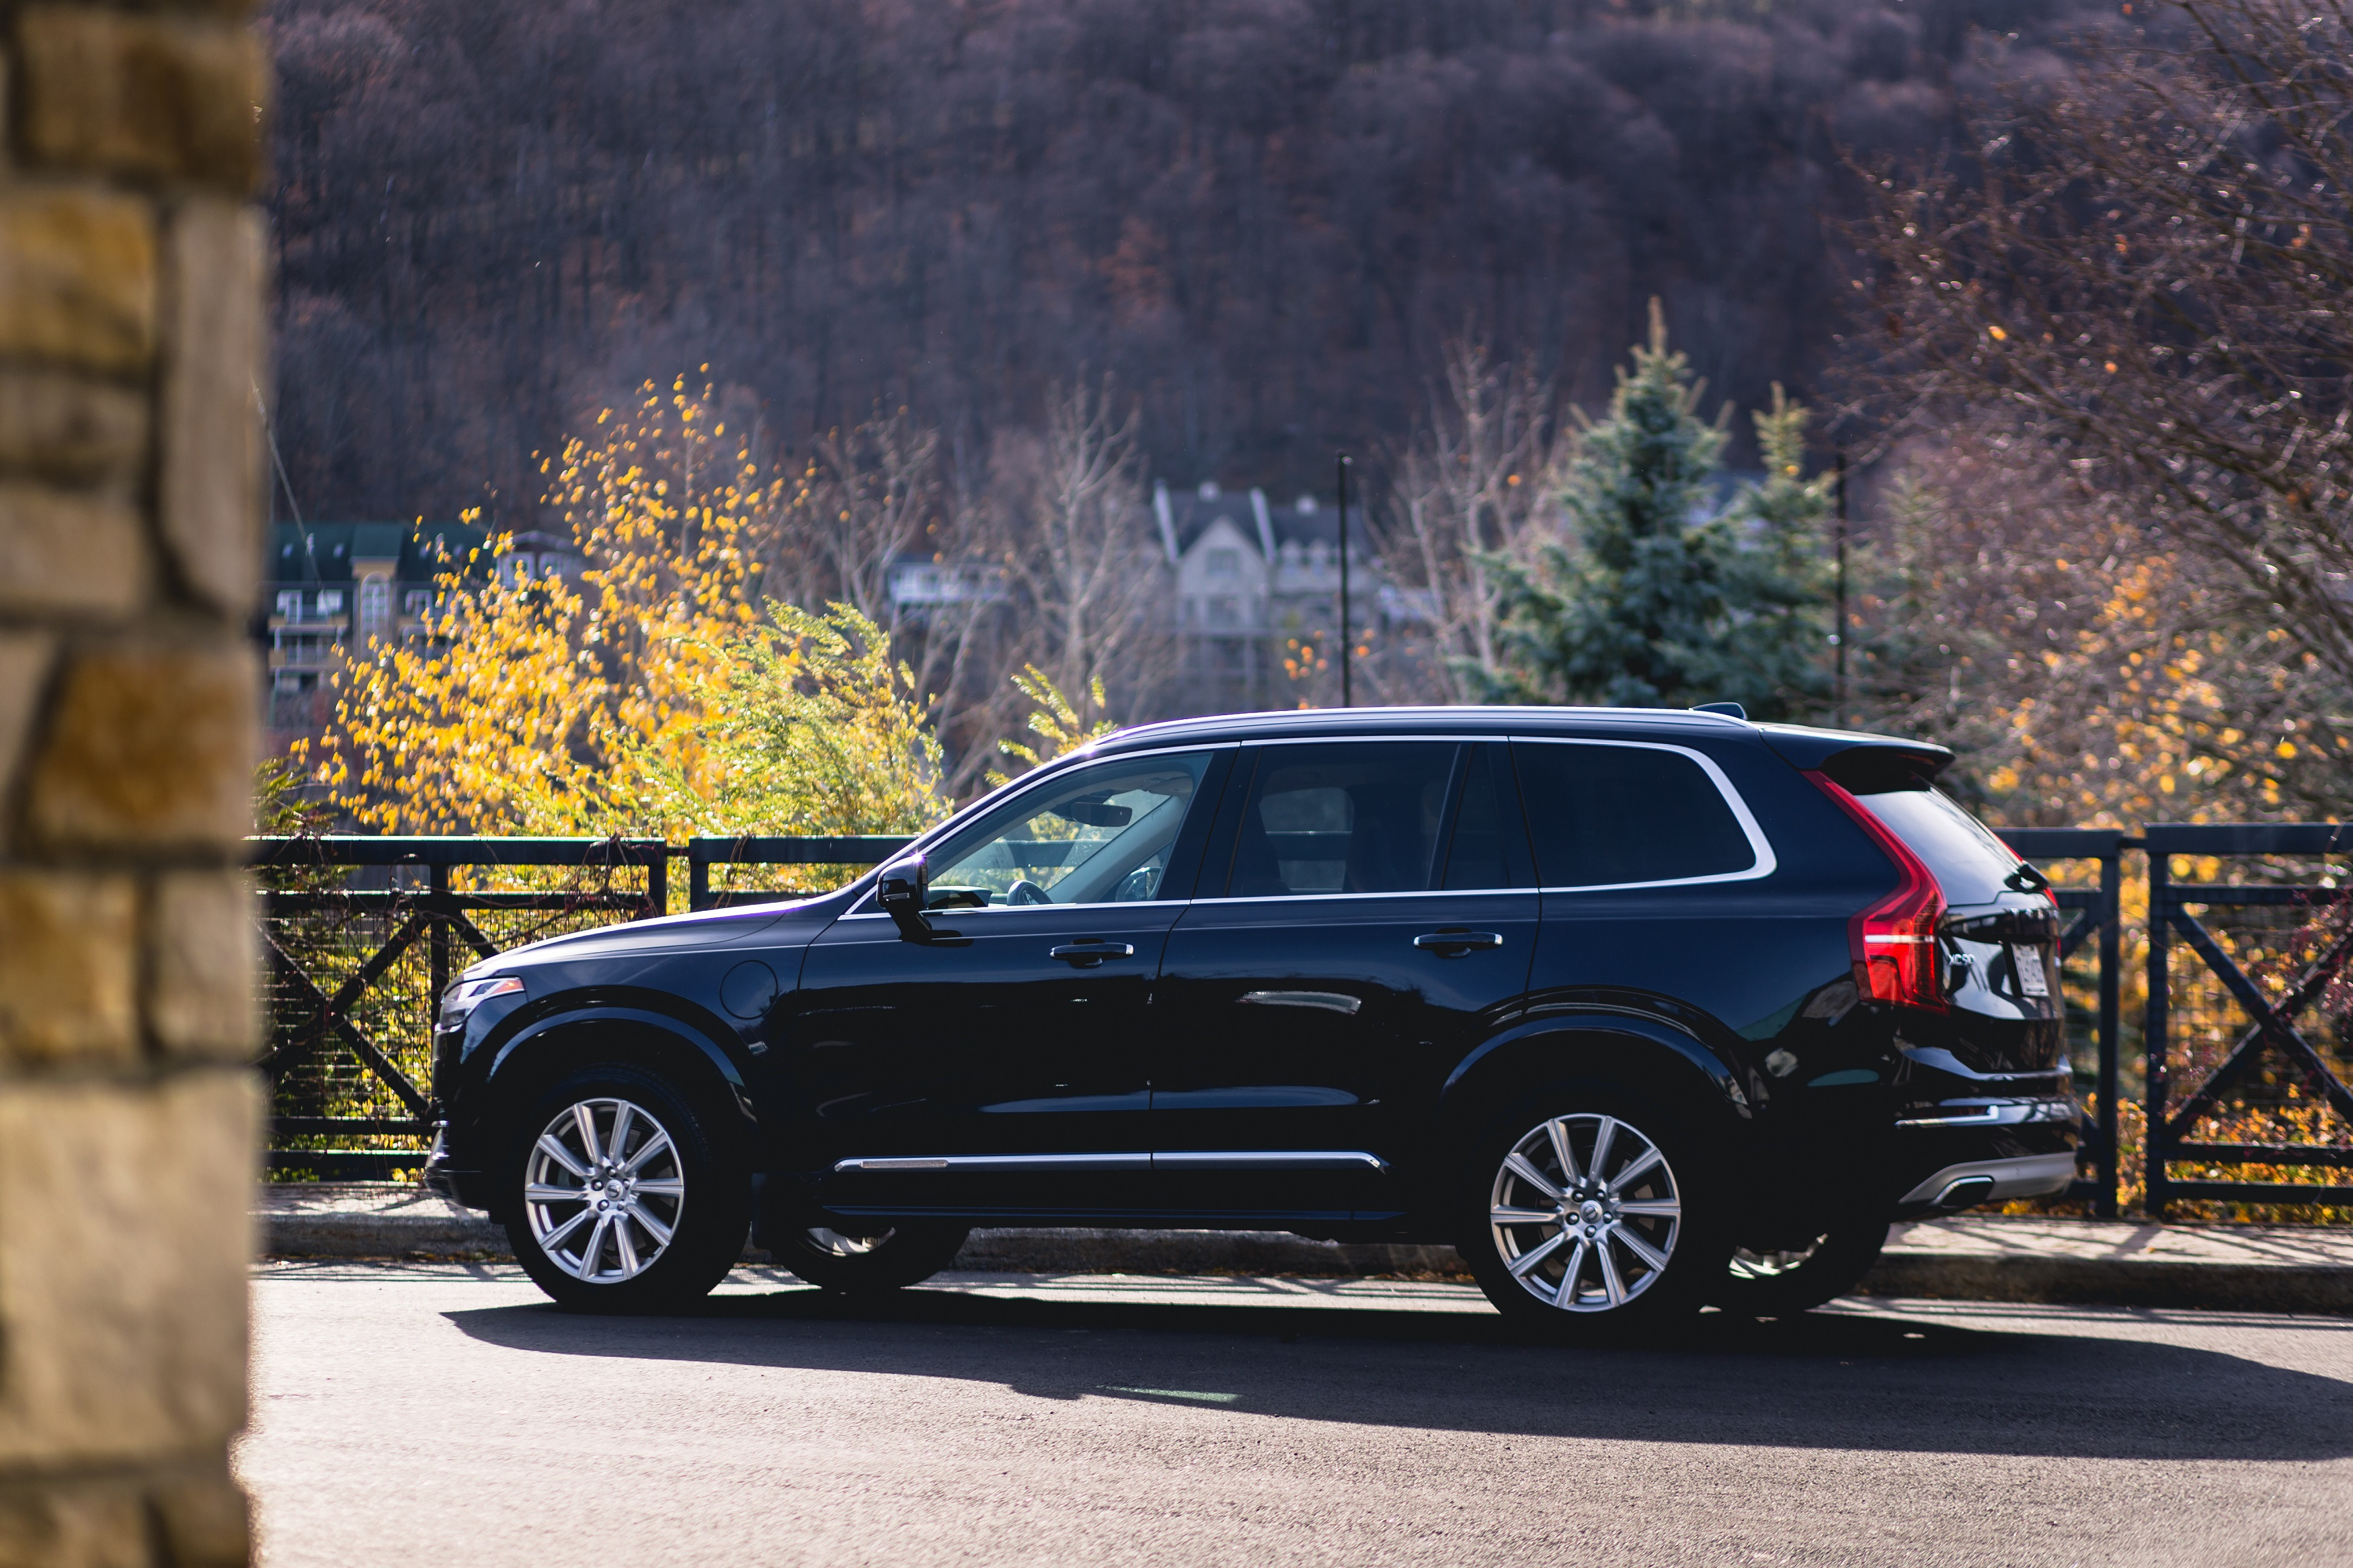 Nurburgring Lap Times >> I Just Can't Get Enough of Volvo's XC90 | Clavey's Corner